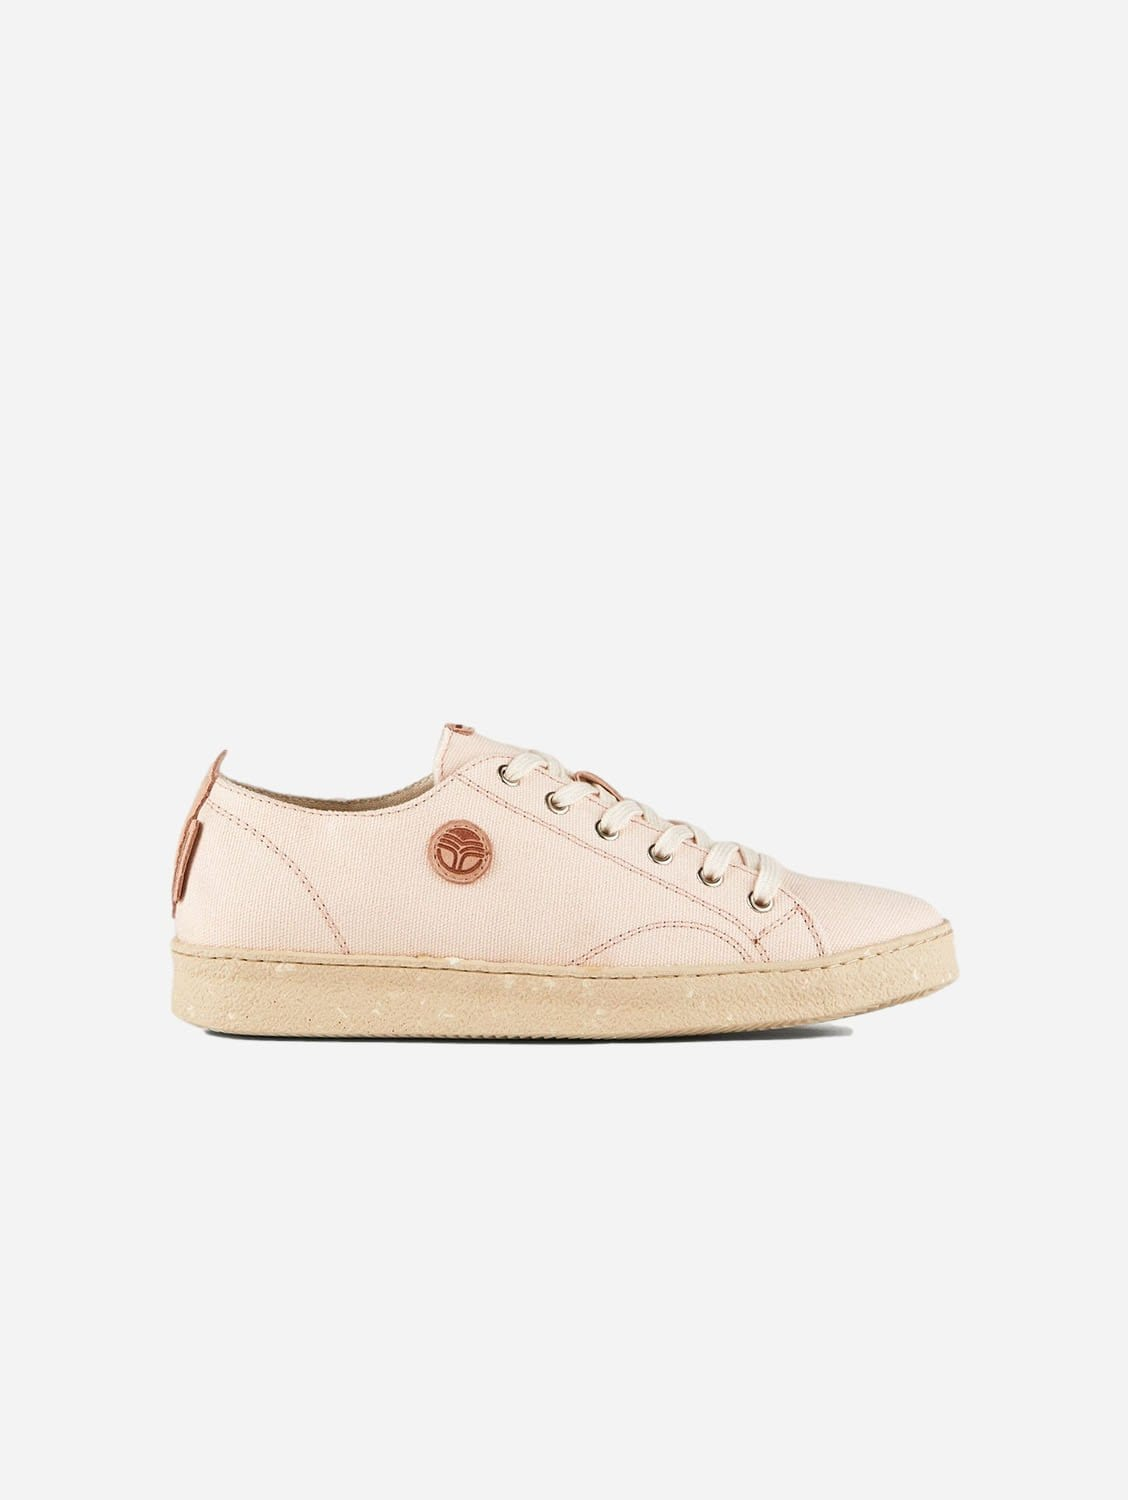 Life Recycled Material Vegan Trainers | Loto